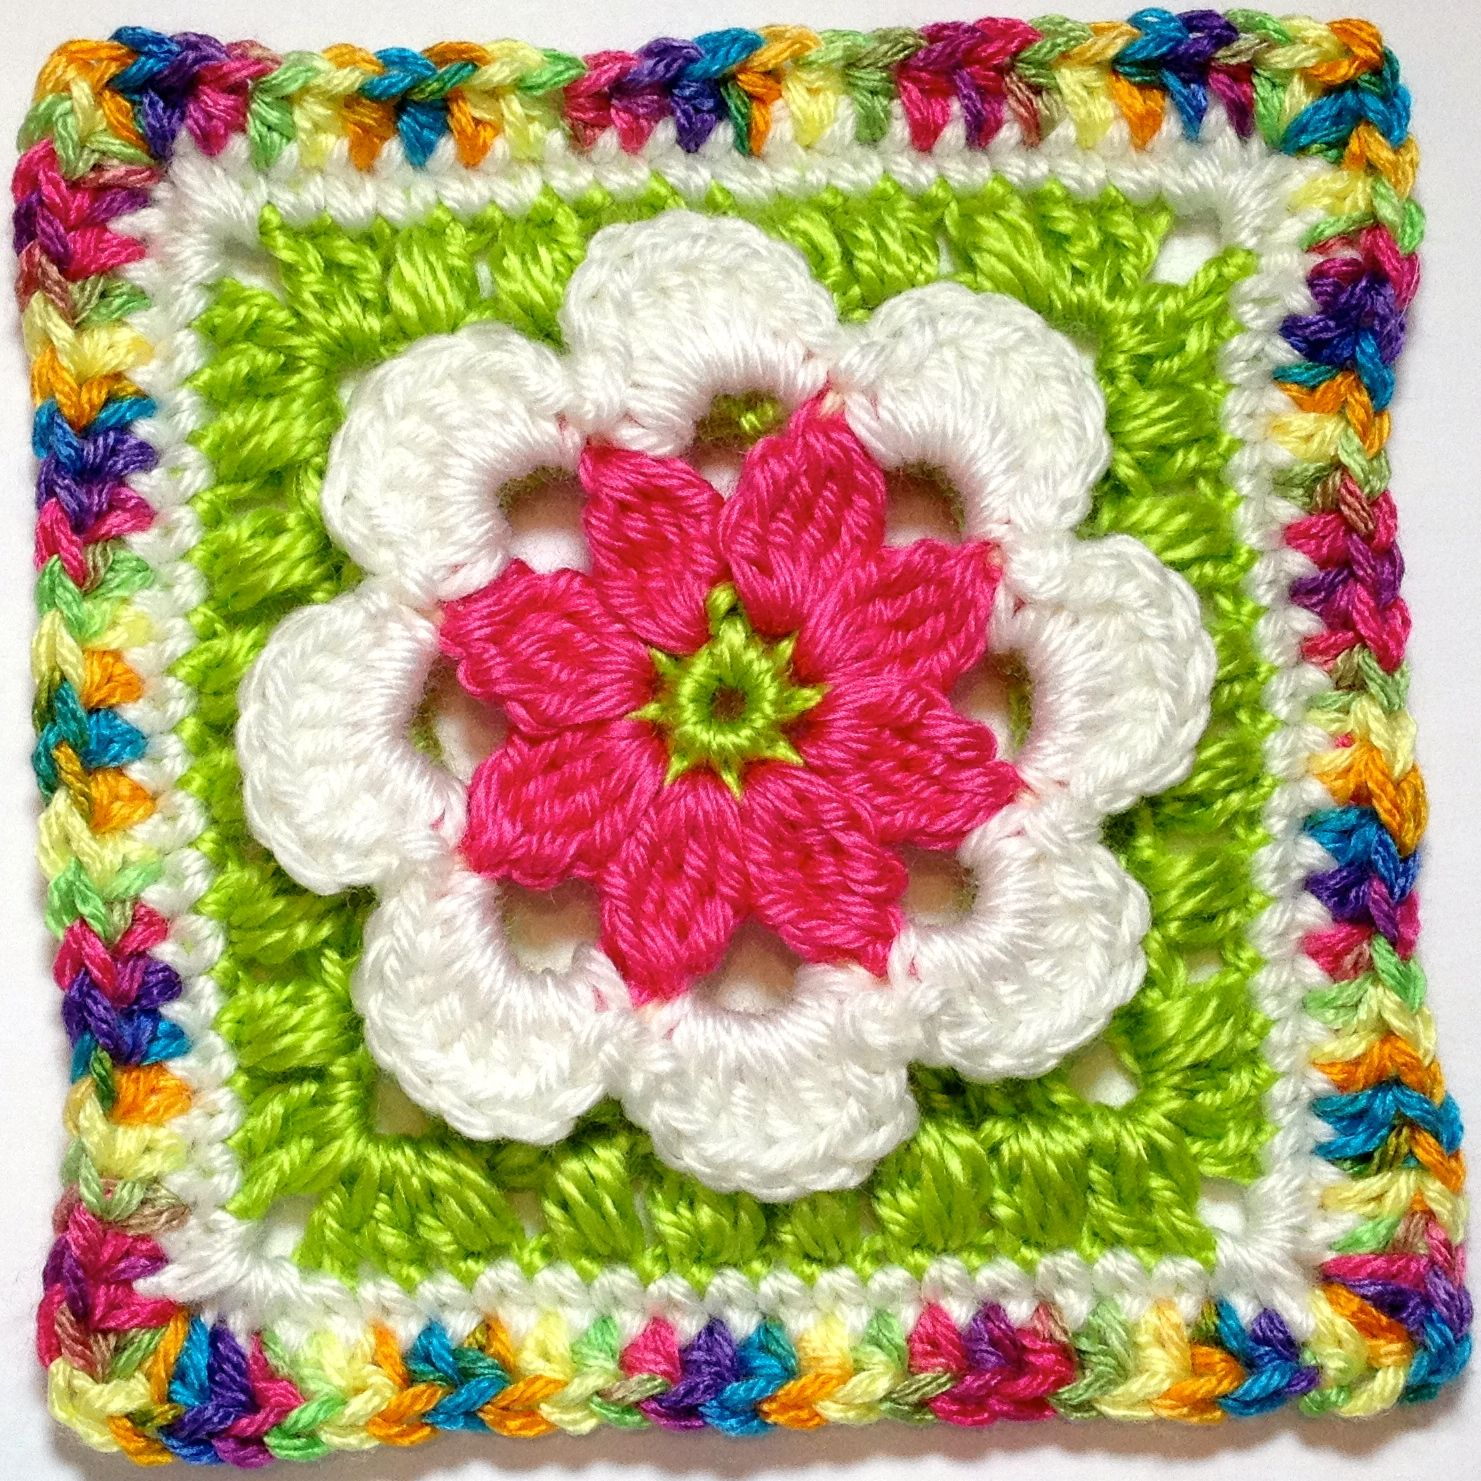 Hooked on granny squares free crochet pattern gancho - Cuadrados de ganchillo granny squares ...